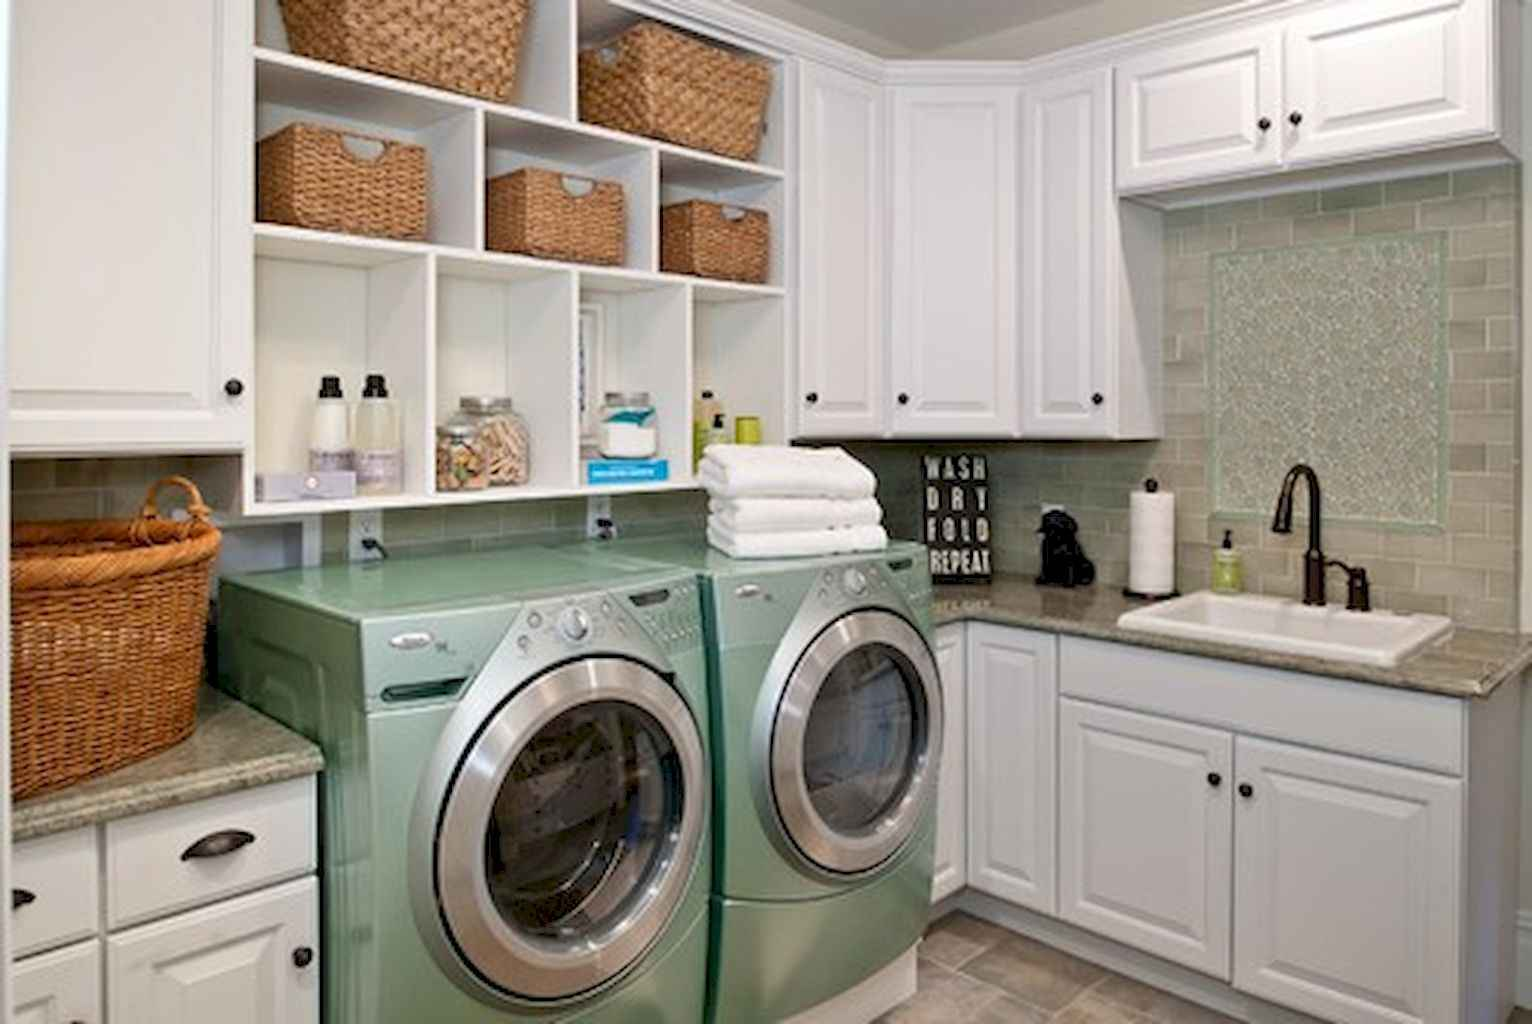 45 Rustic Farmhouse Laundry Room Design Ideas and Makeover (44)